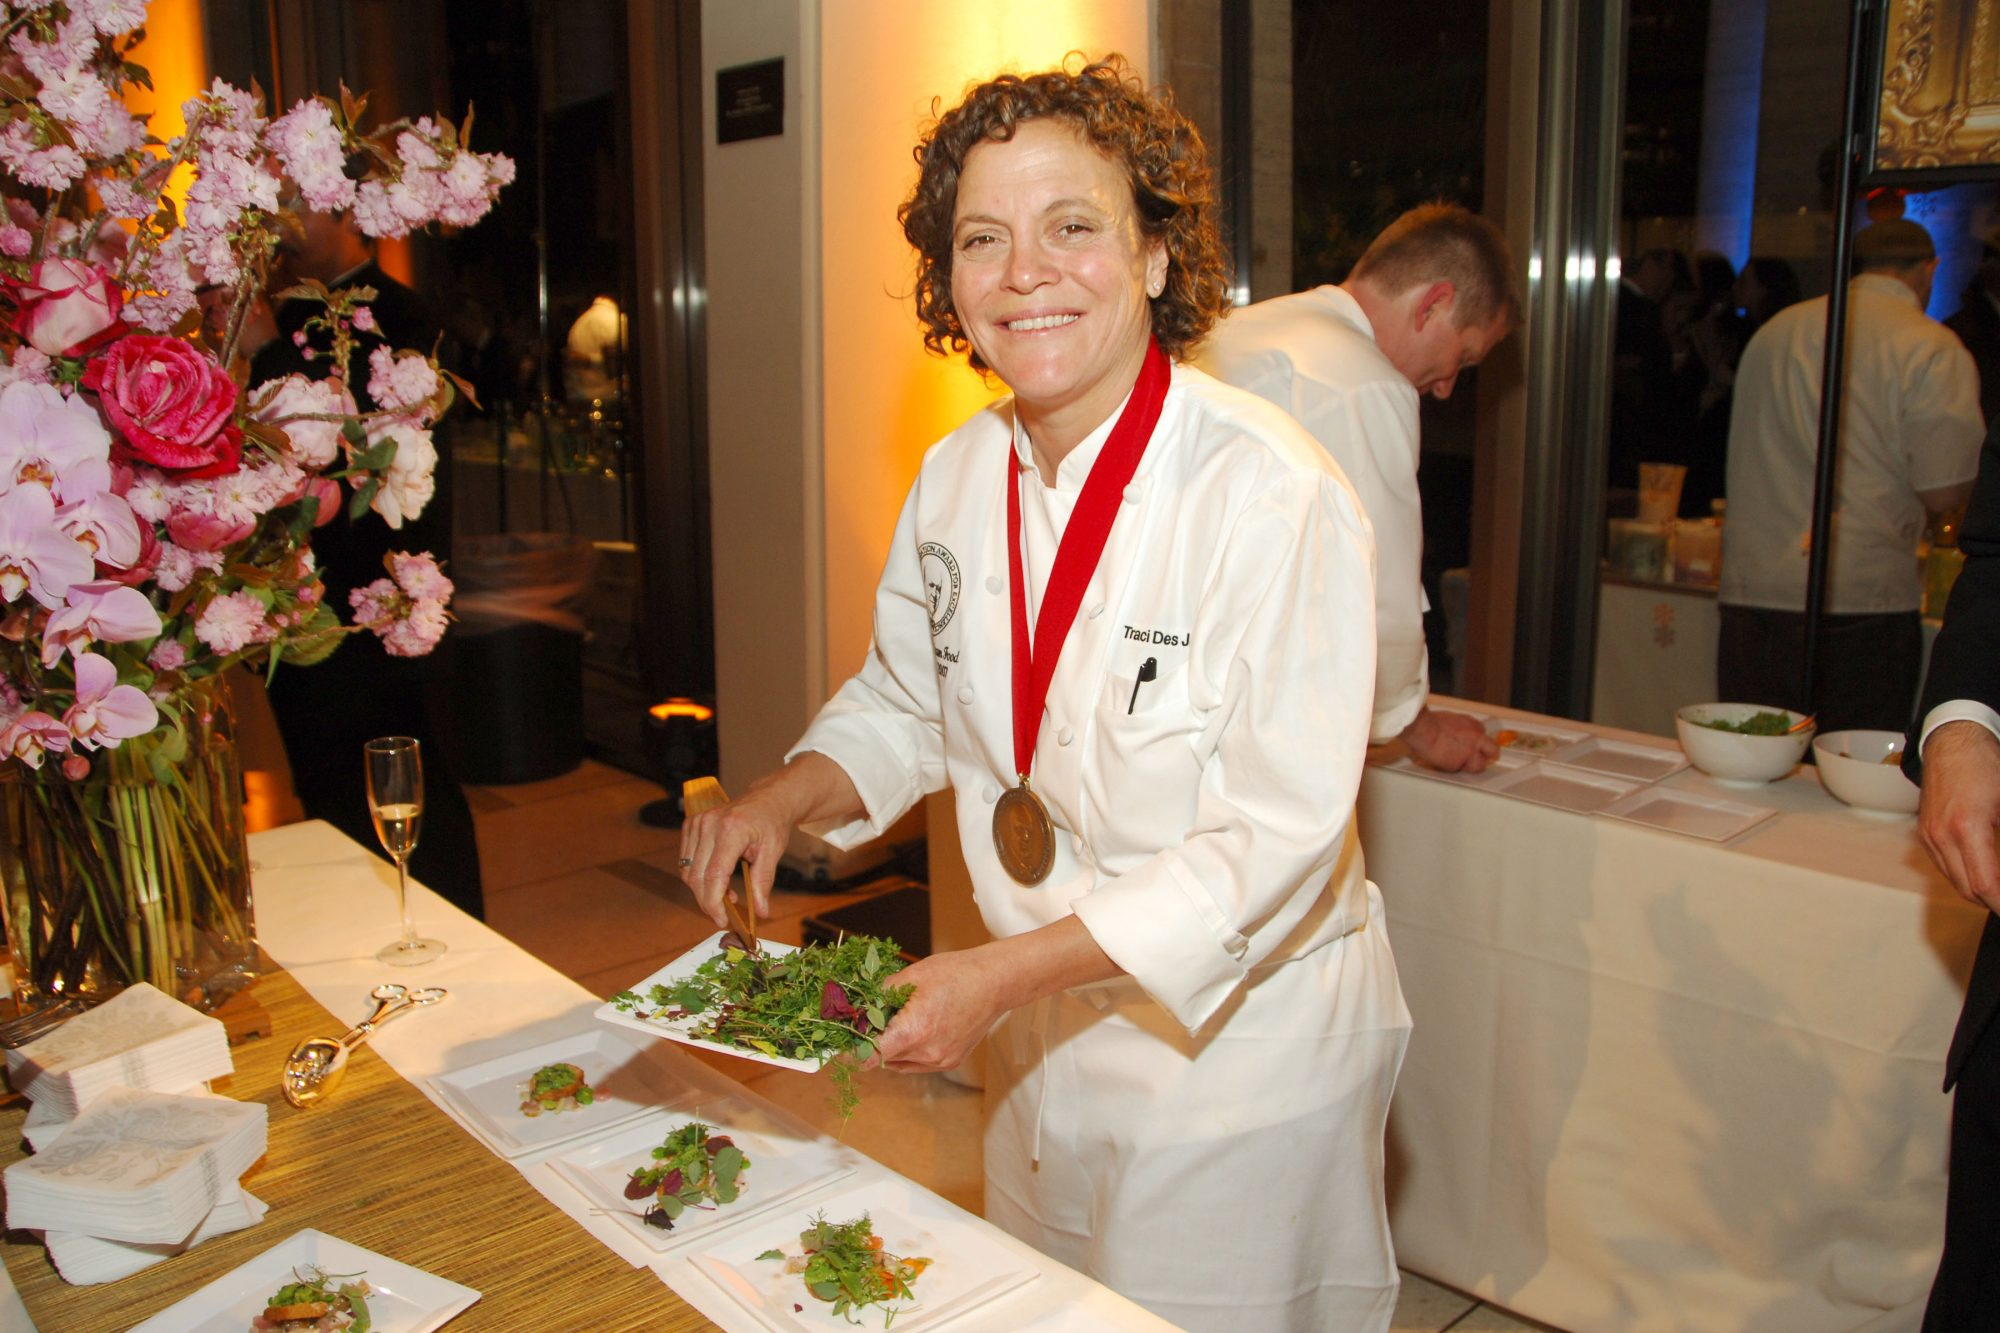 JBF Goes on Tour with Dinners Around the Country Featuring All-Star Chefs